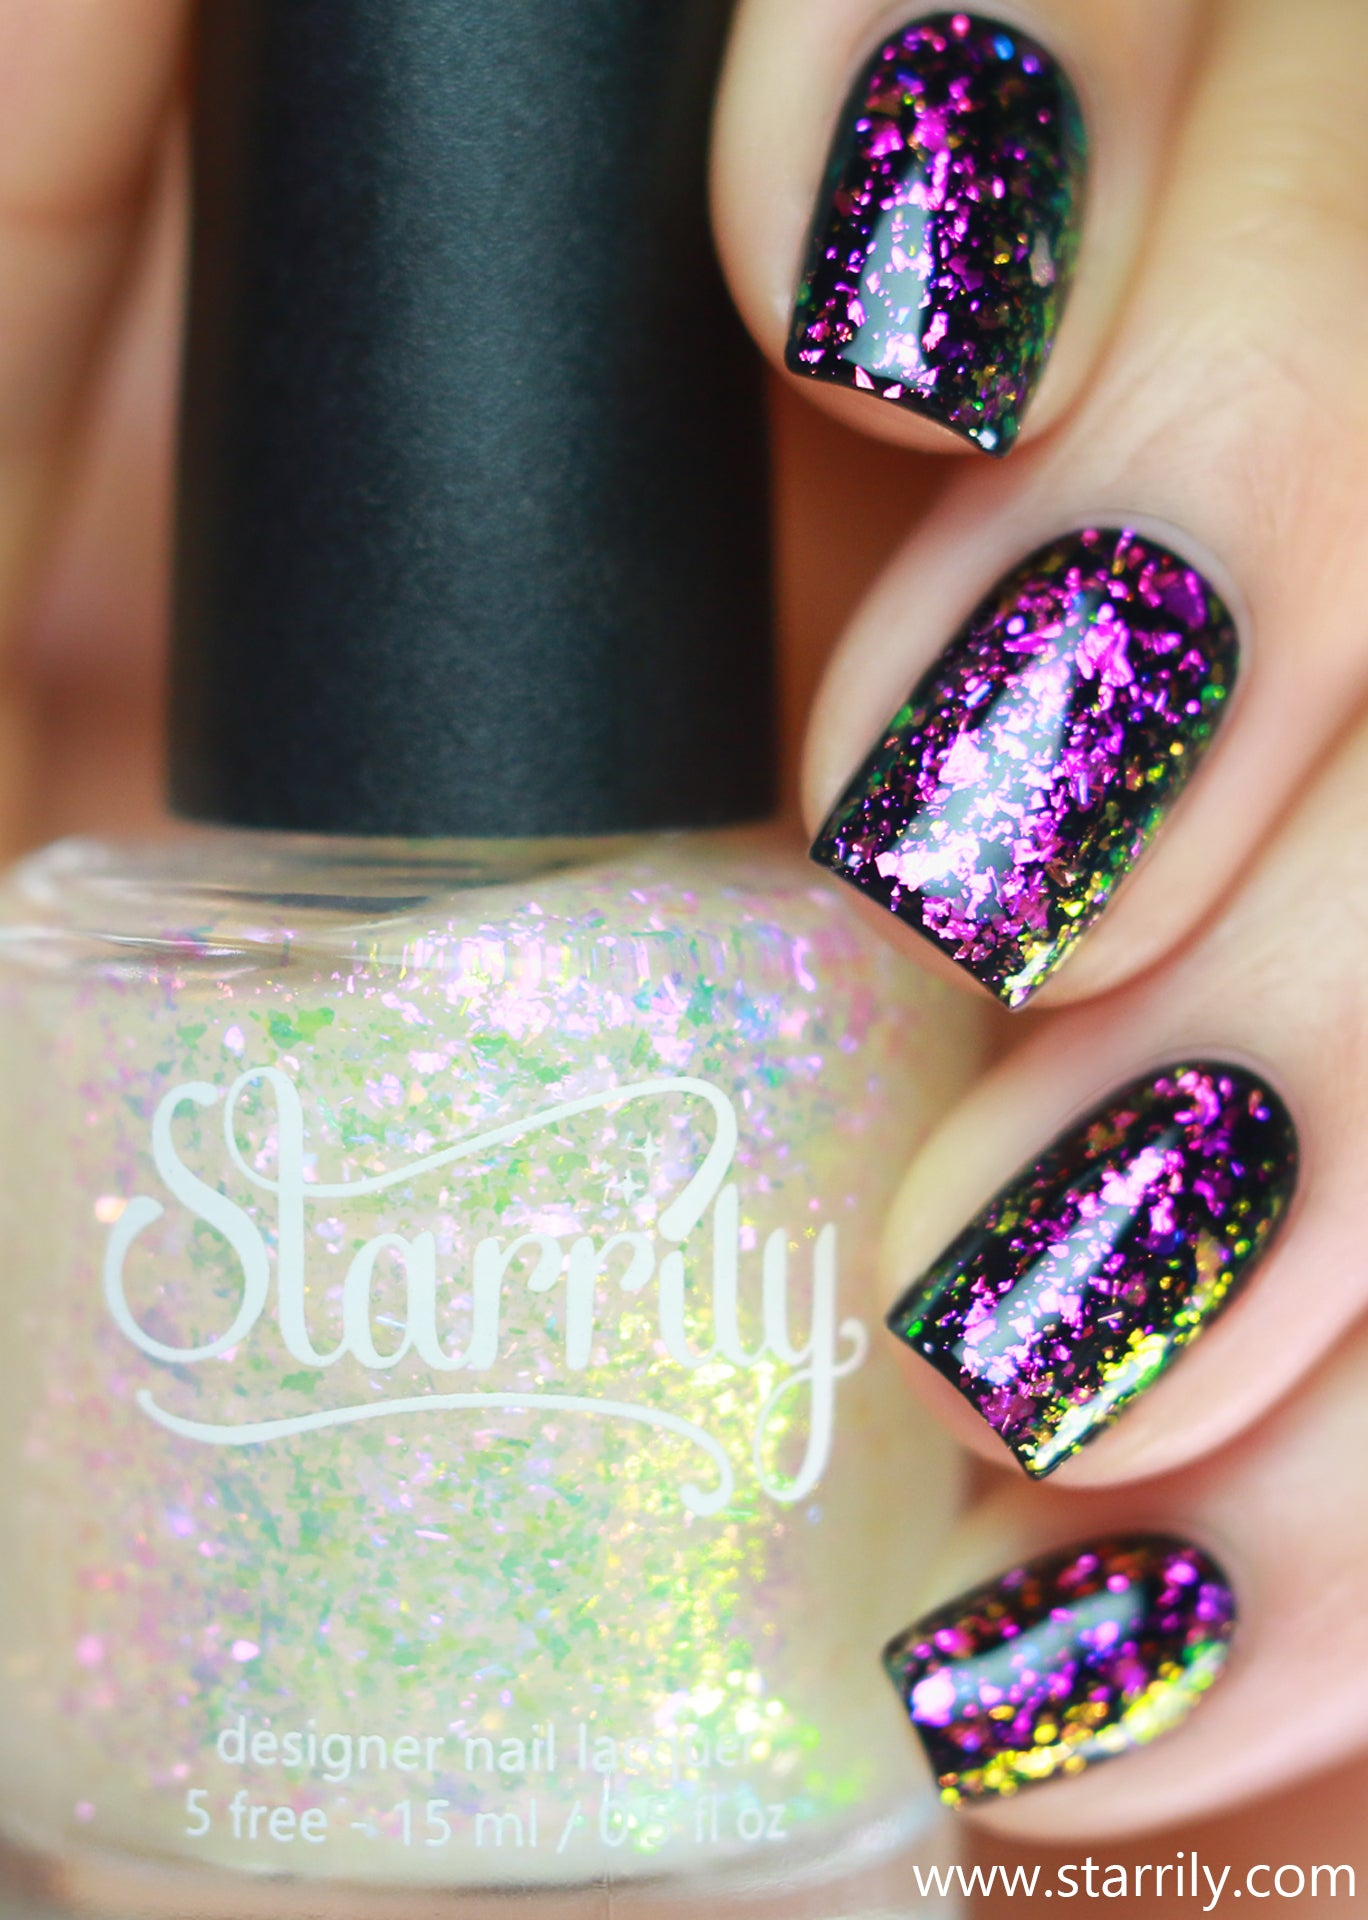 Pandoras Box is an iridescent multichrome flake nail polish that shifts from pink red and gold